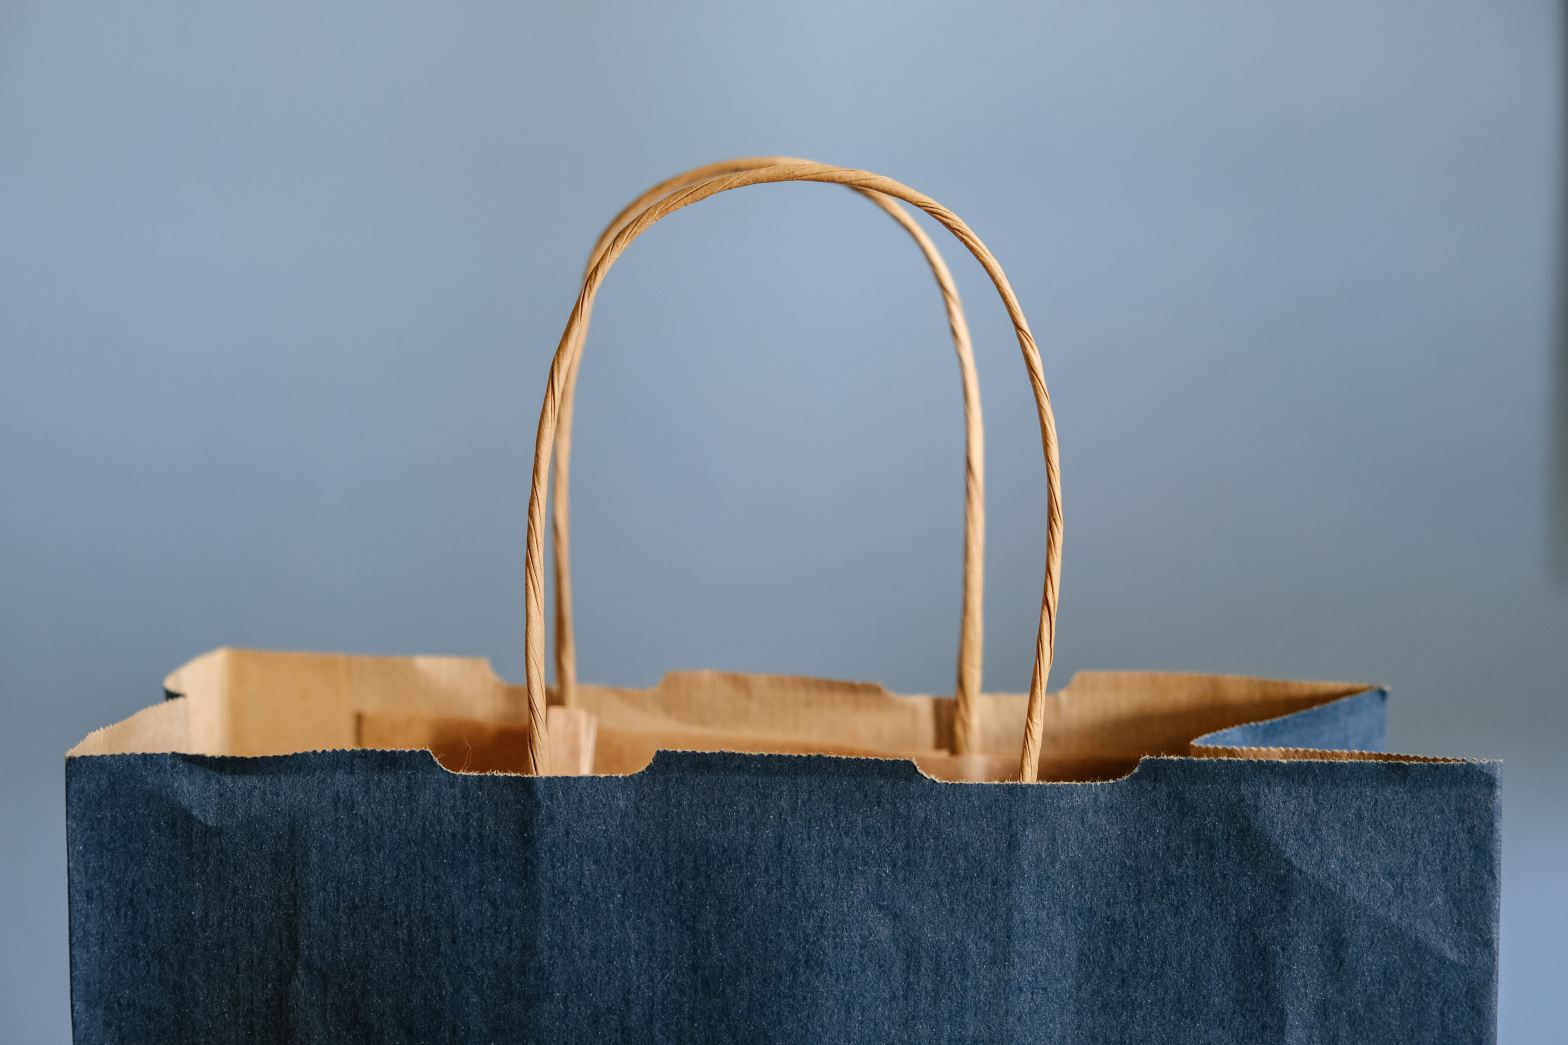 Well, I'm Not Actually on a Budget. Instead, I Ask Myself These 4 Questions Before I Buy Anything - Butch on a Budget